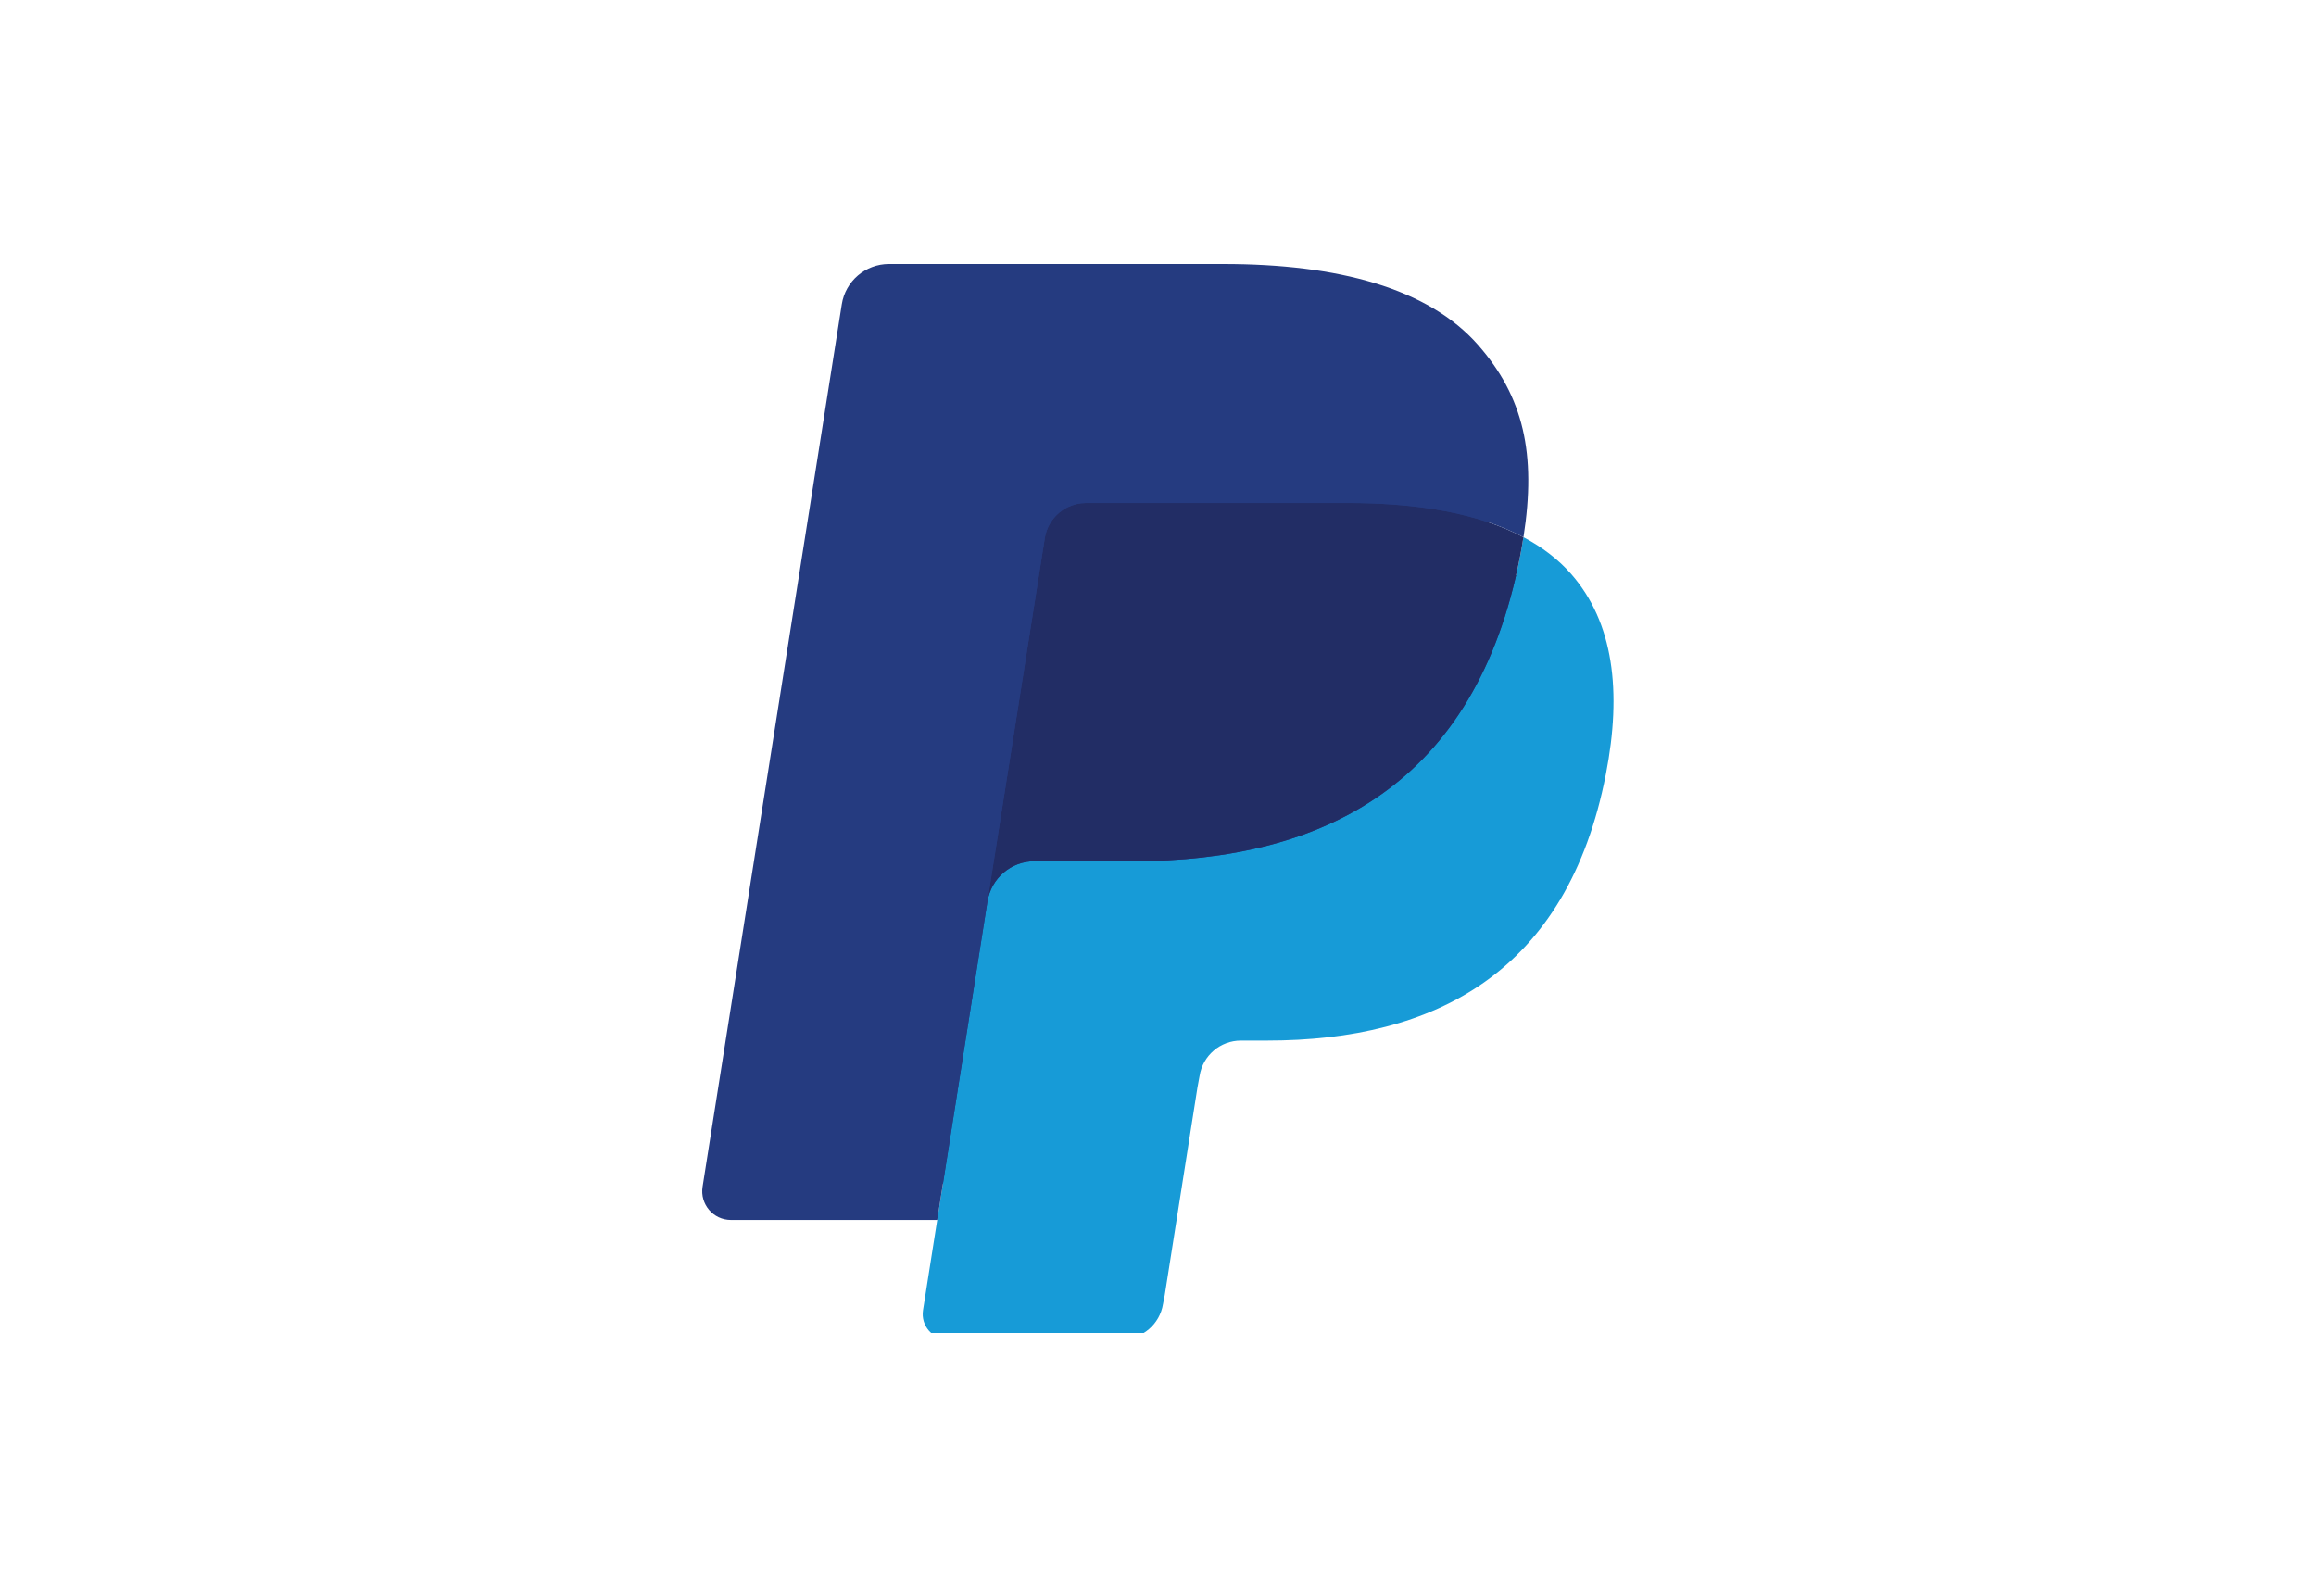 Premium Paypal Verified Accounts